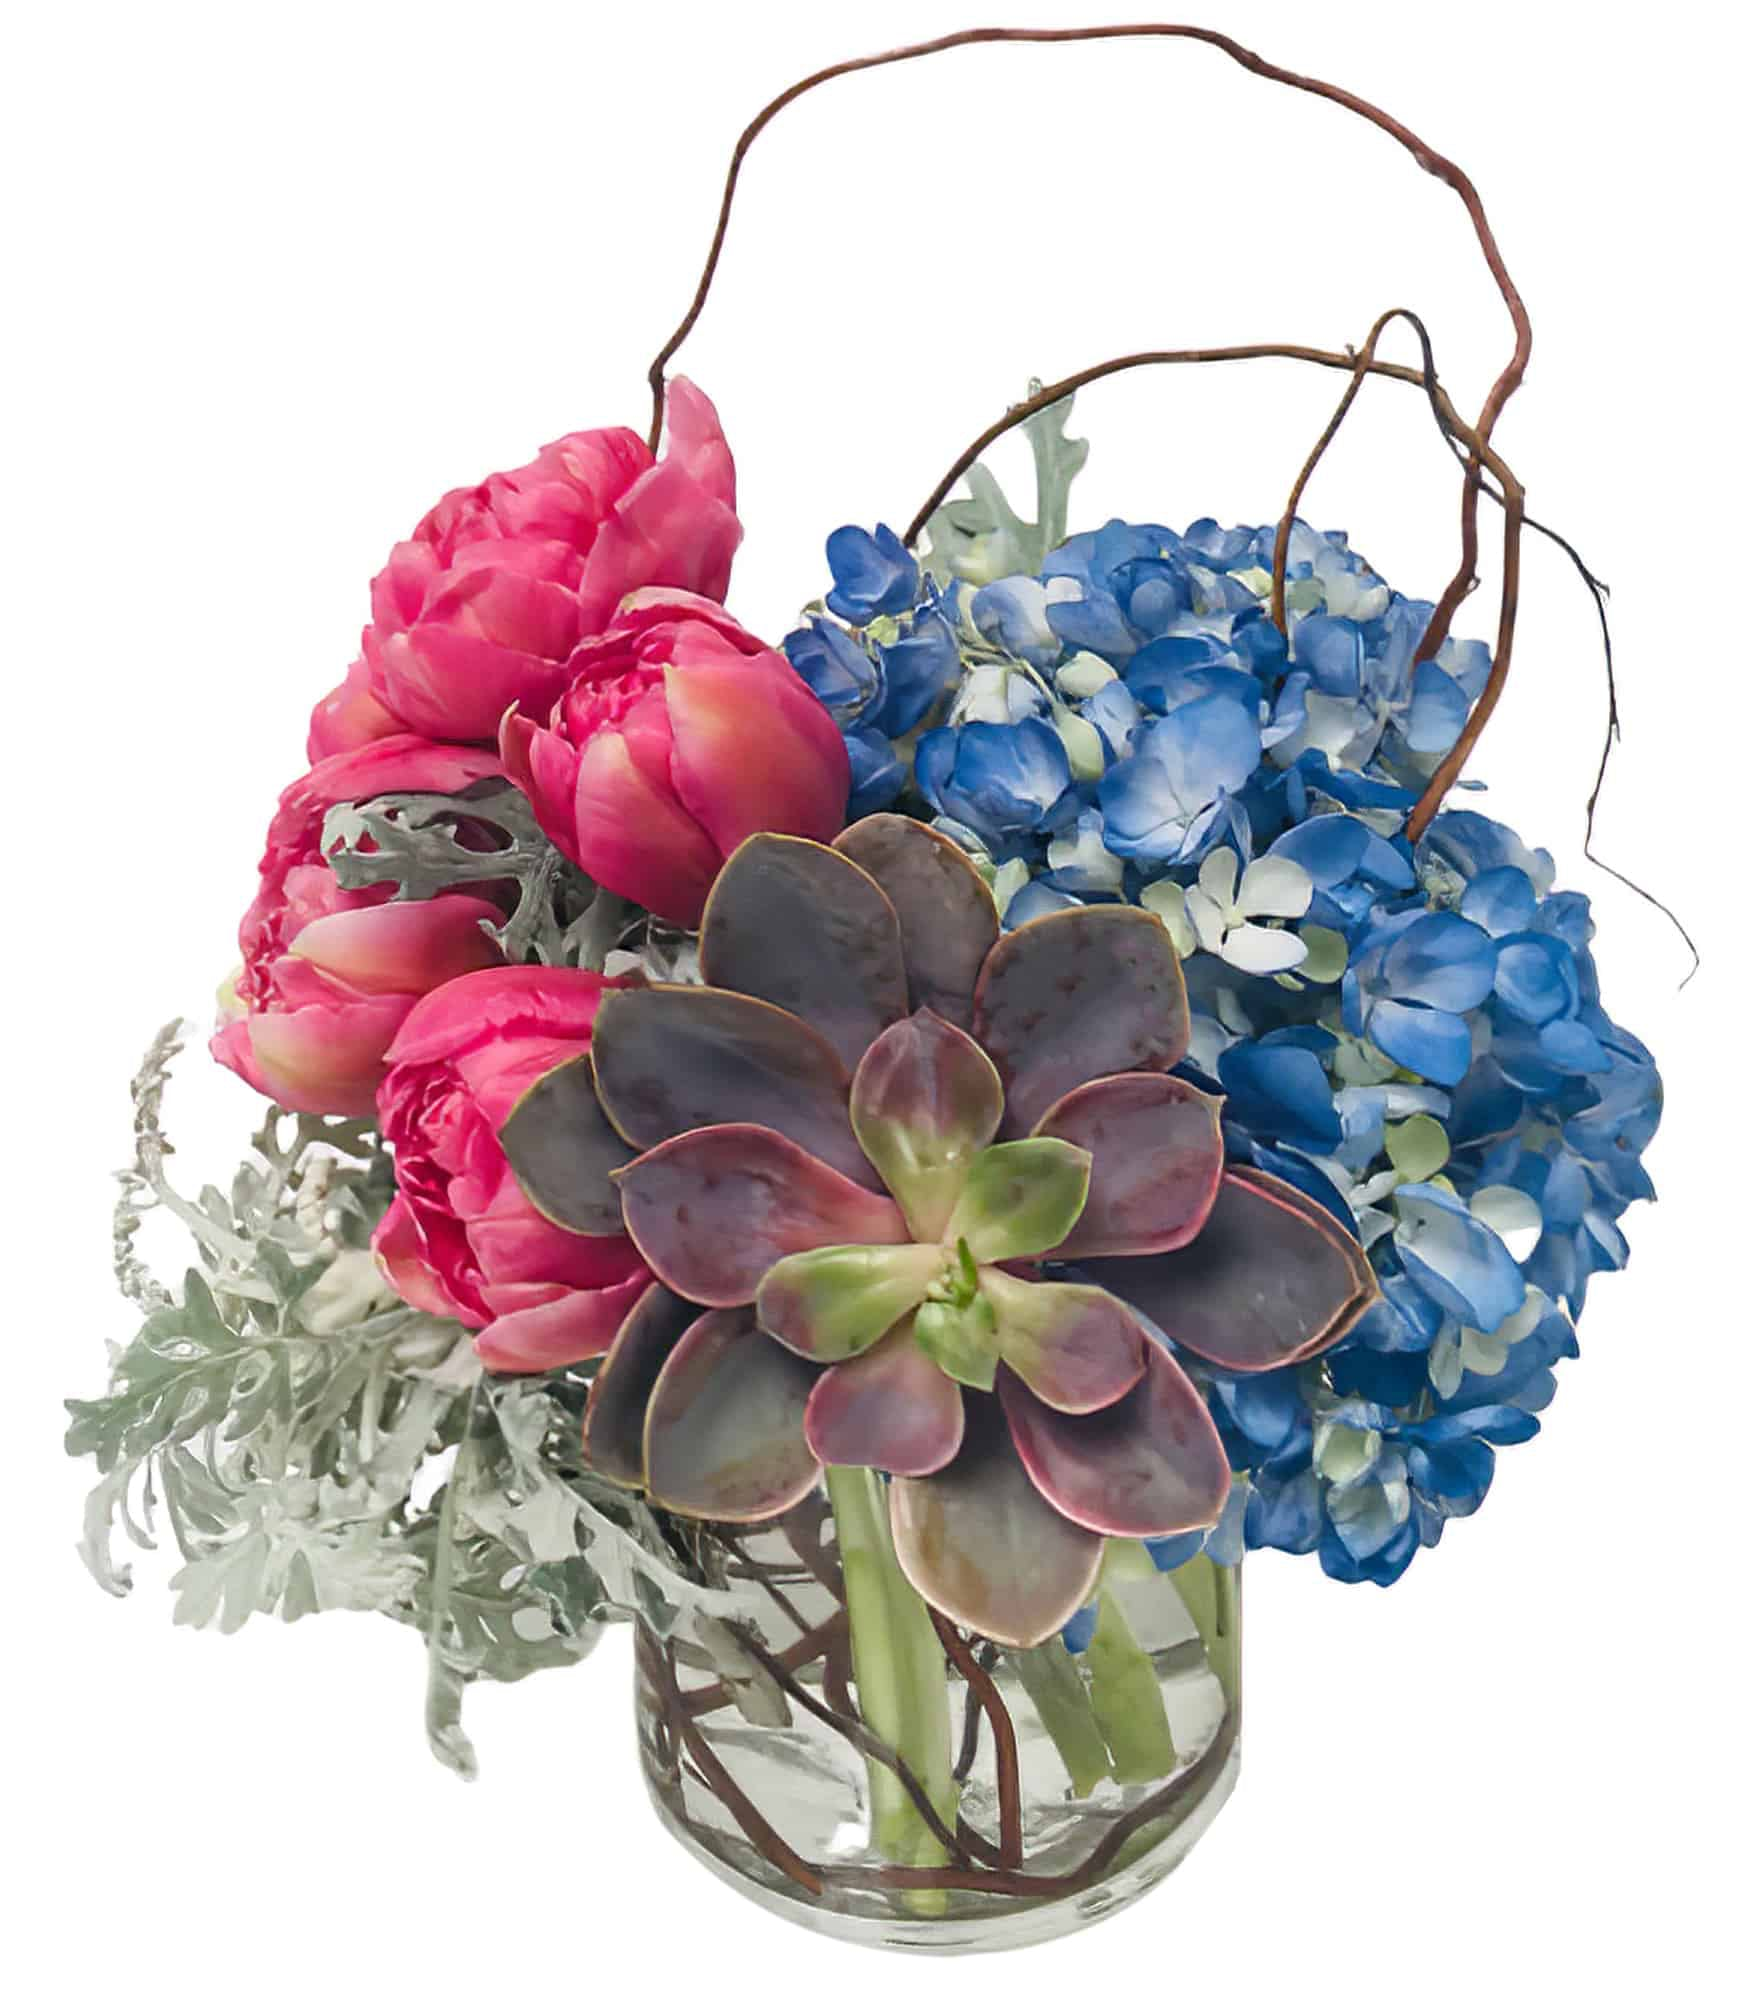 Willows of Spring Flower Arrangement | San Francisco Florist Since 1871 Free Bay Area and San Francisco Flower Delivery